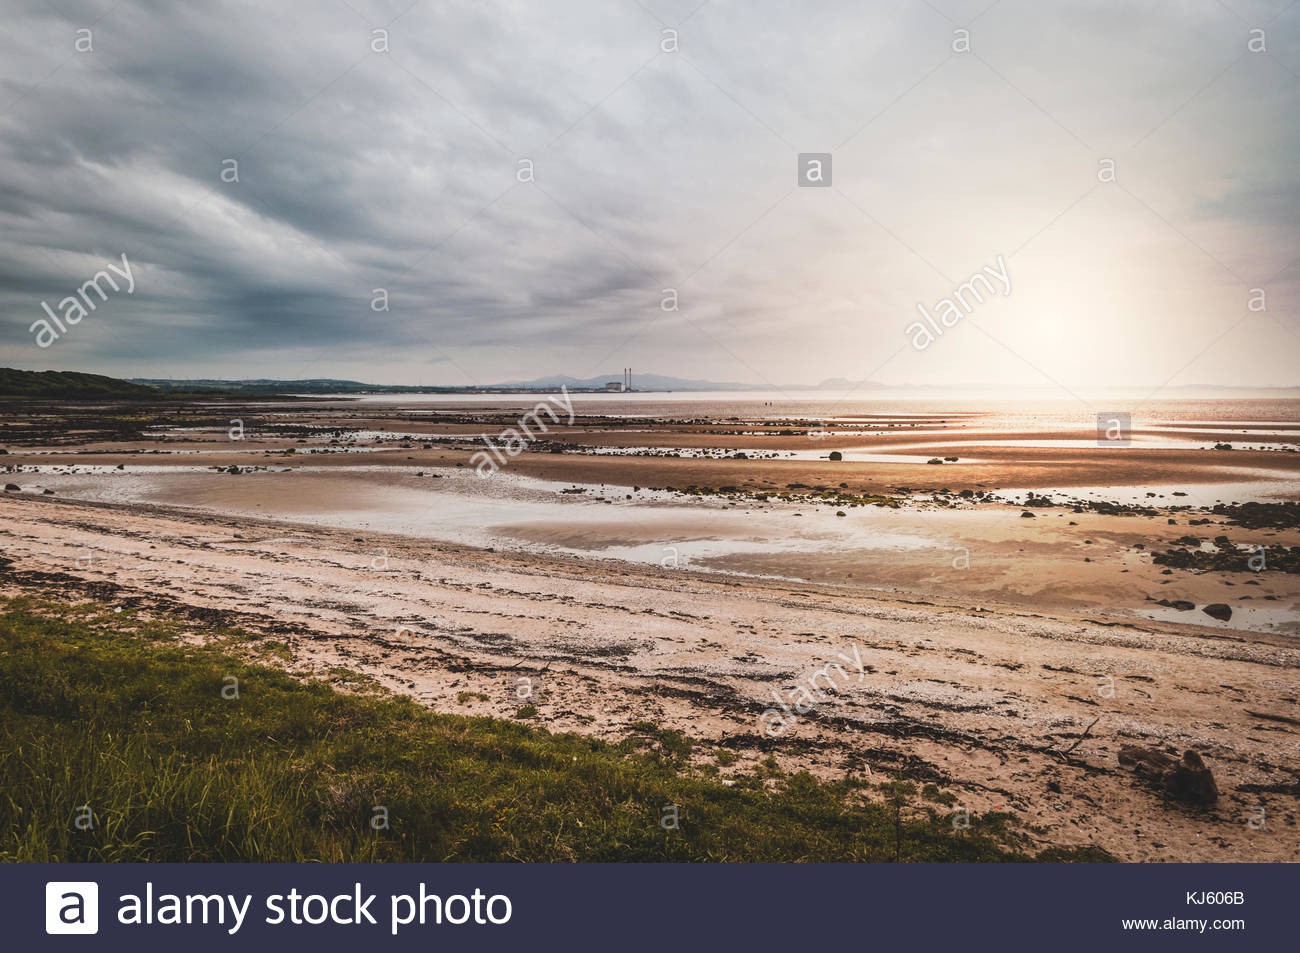 beach at sunset - Stock Image